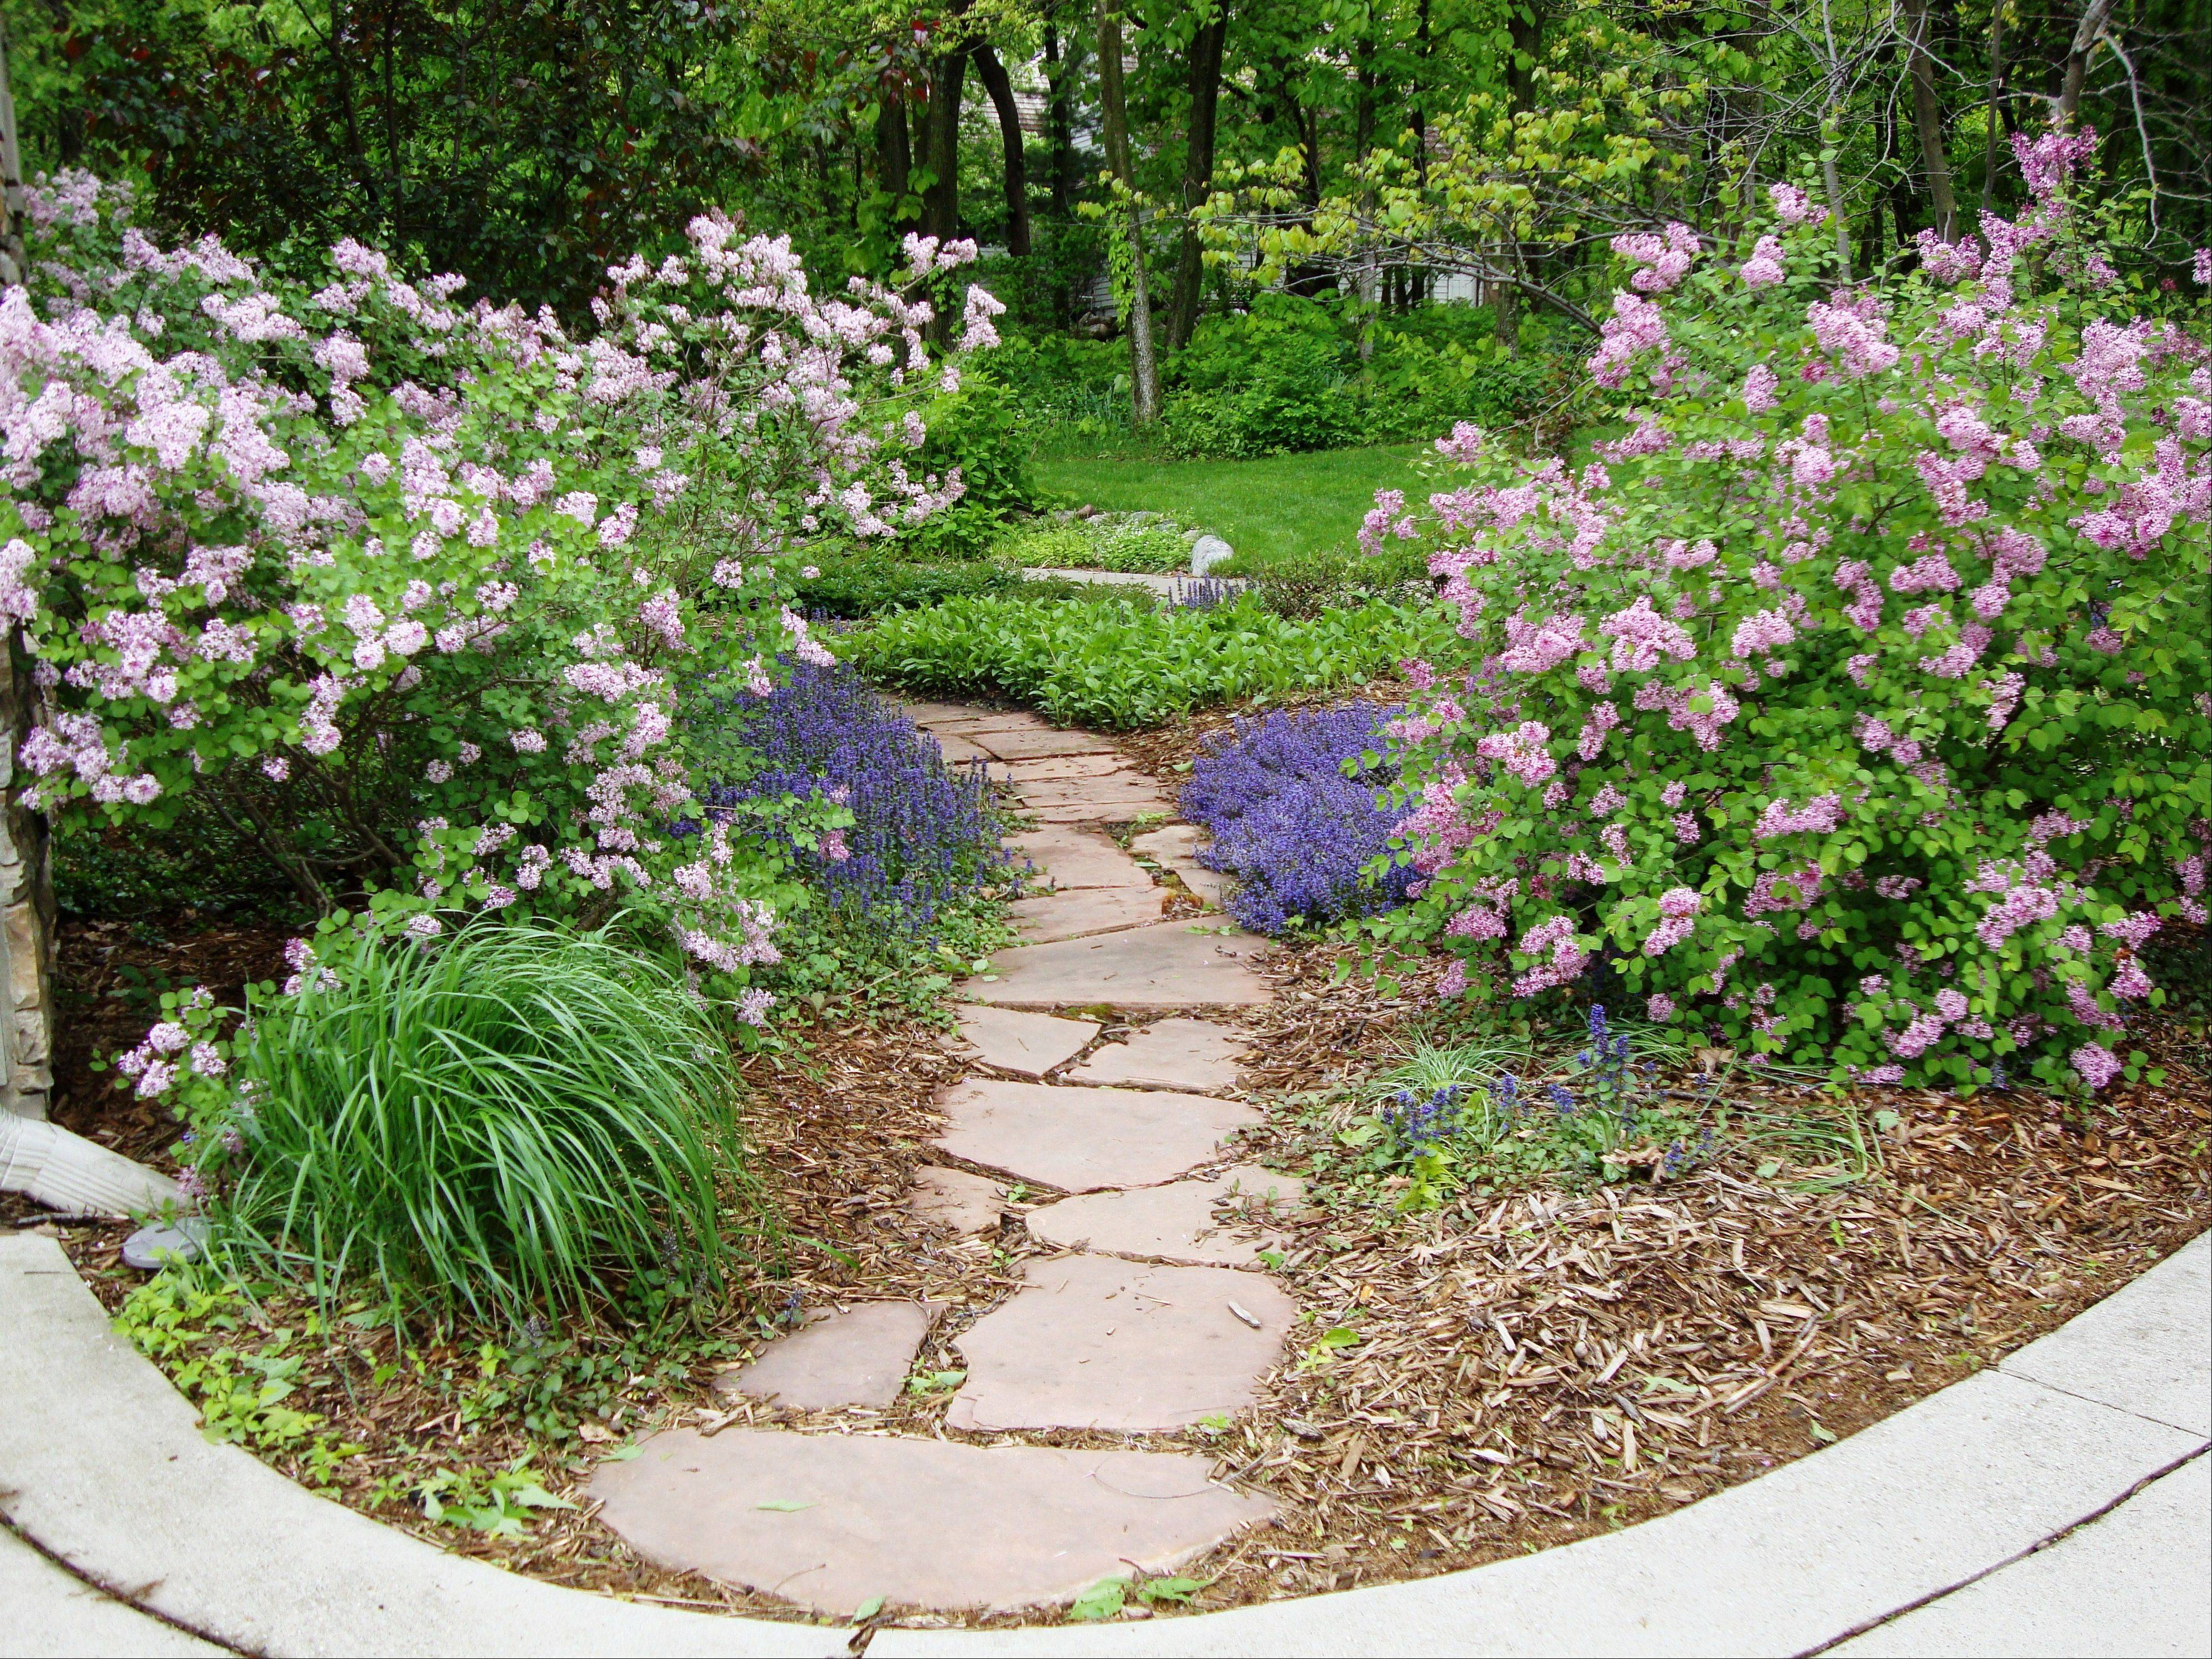 A flagstone path could lead visitors into the yard.